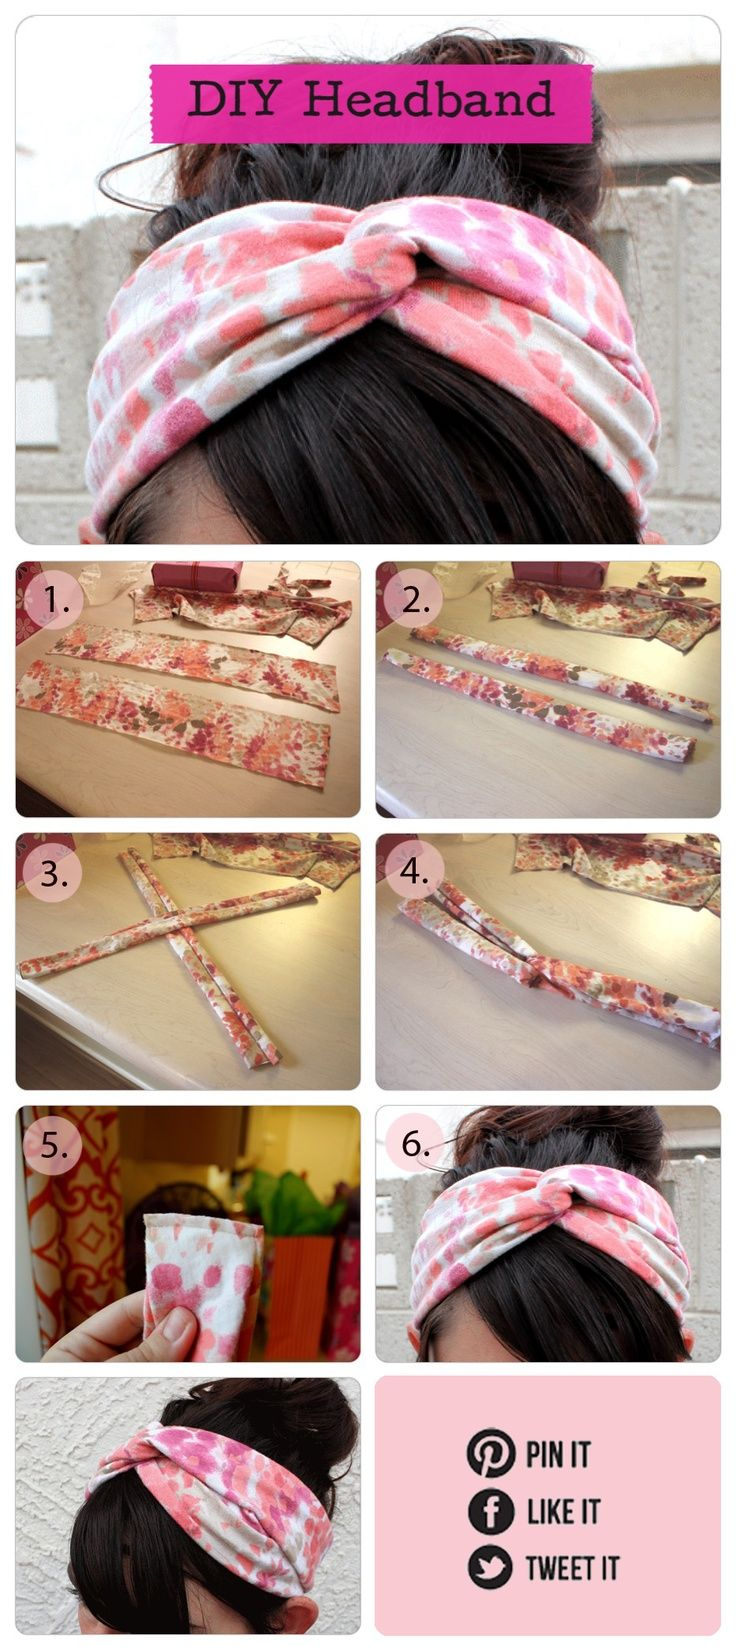 DIY headband and other must try diy's...i wonder if for the head band you could use a hot glue gun instead of sewing